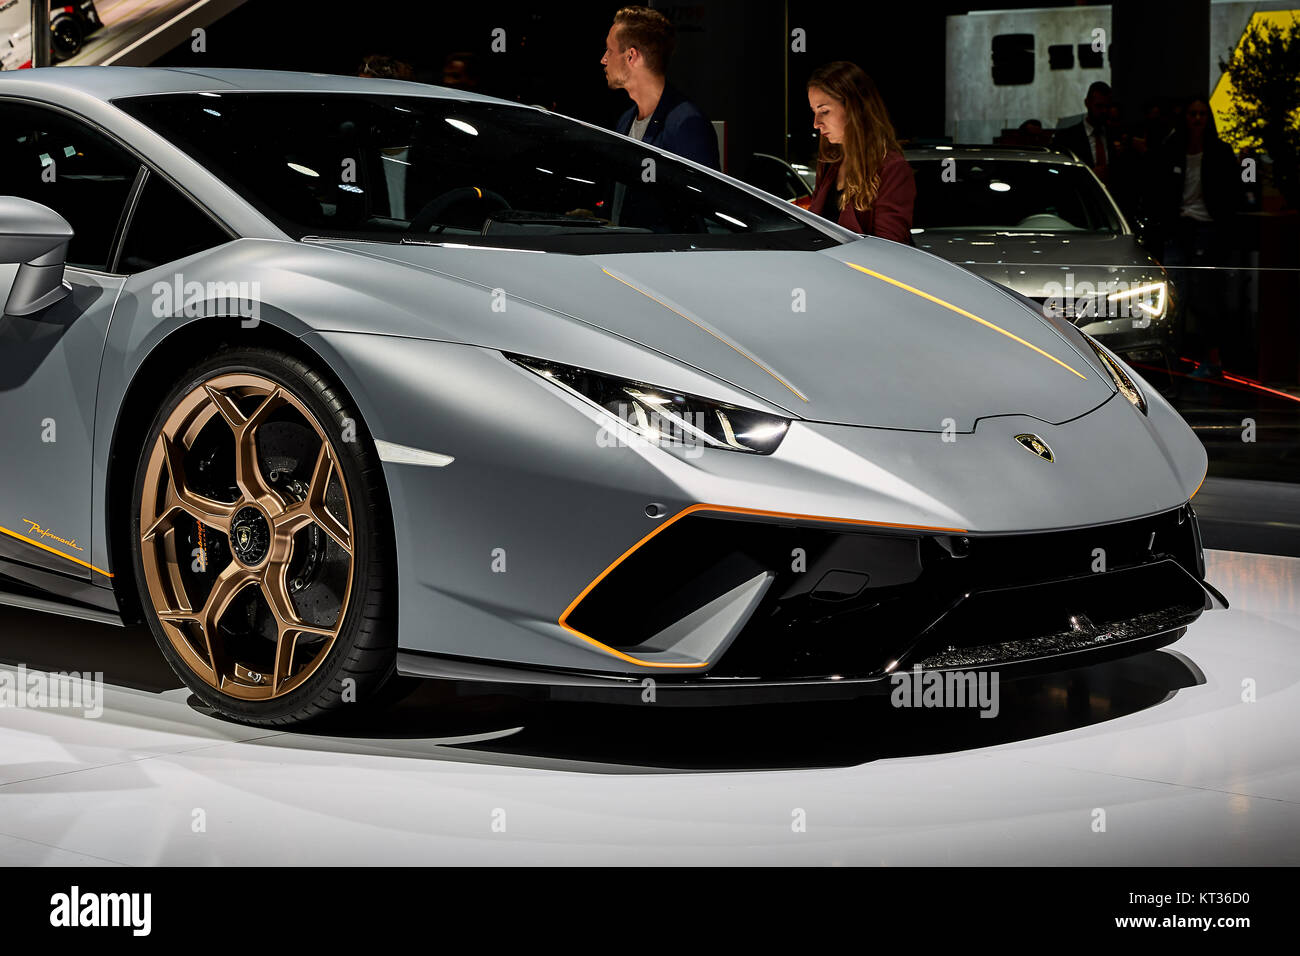 Frankfurt, Germany   September 12, 2017: 2017 Lamborghini Huracan  Perfomante Presented On The